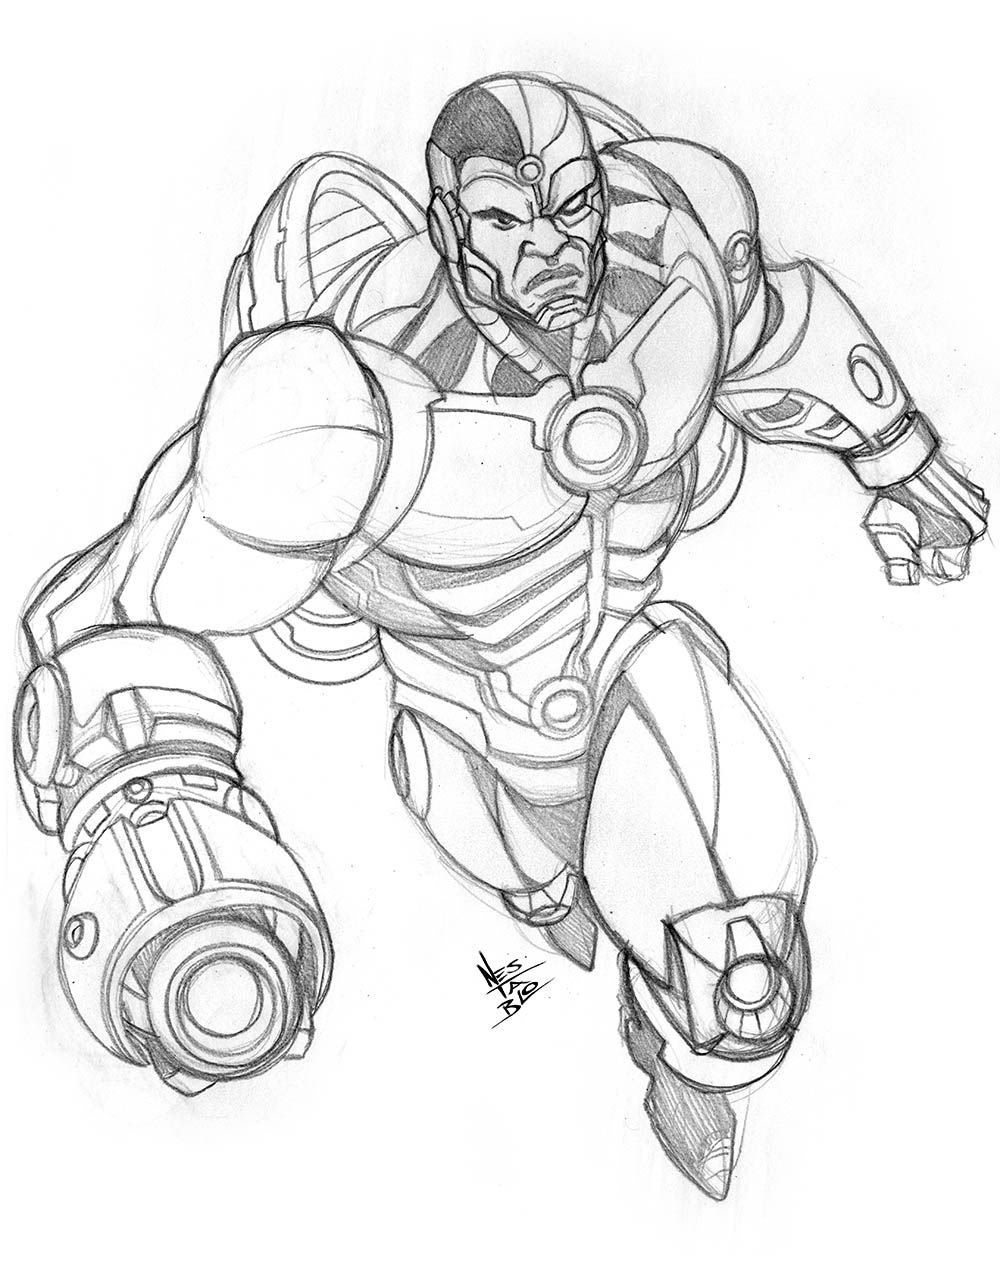 cyborg sketch comic book illustration pinterest sketches